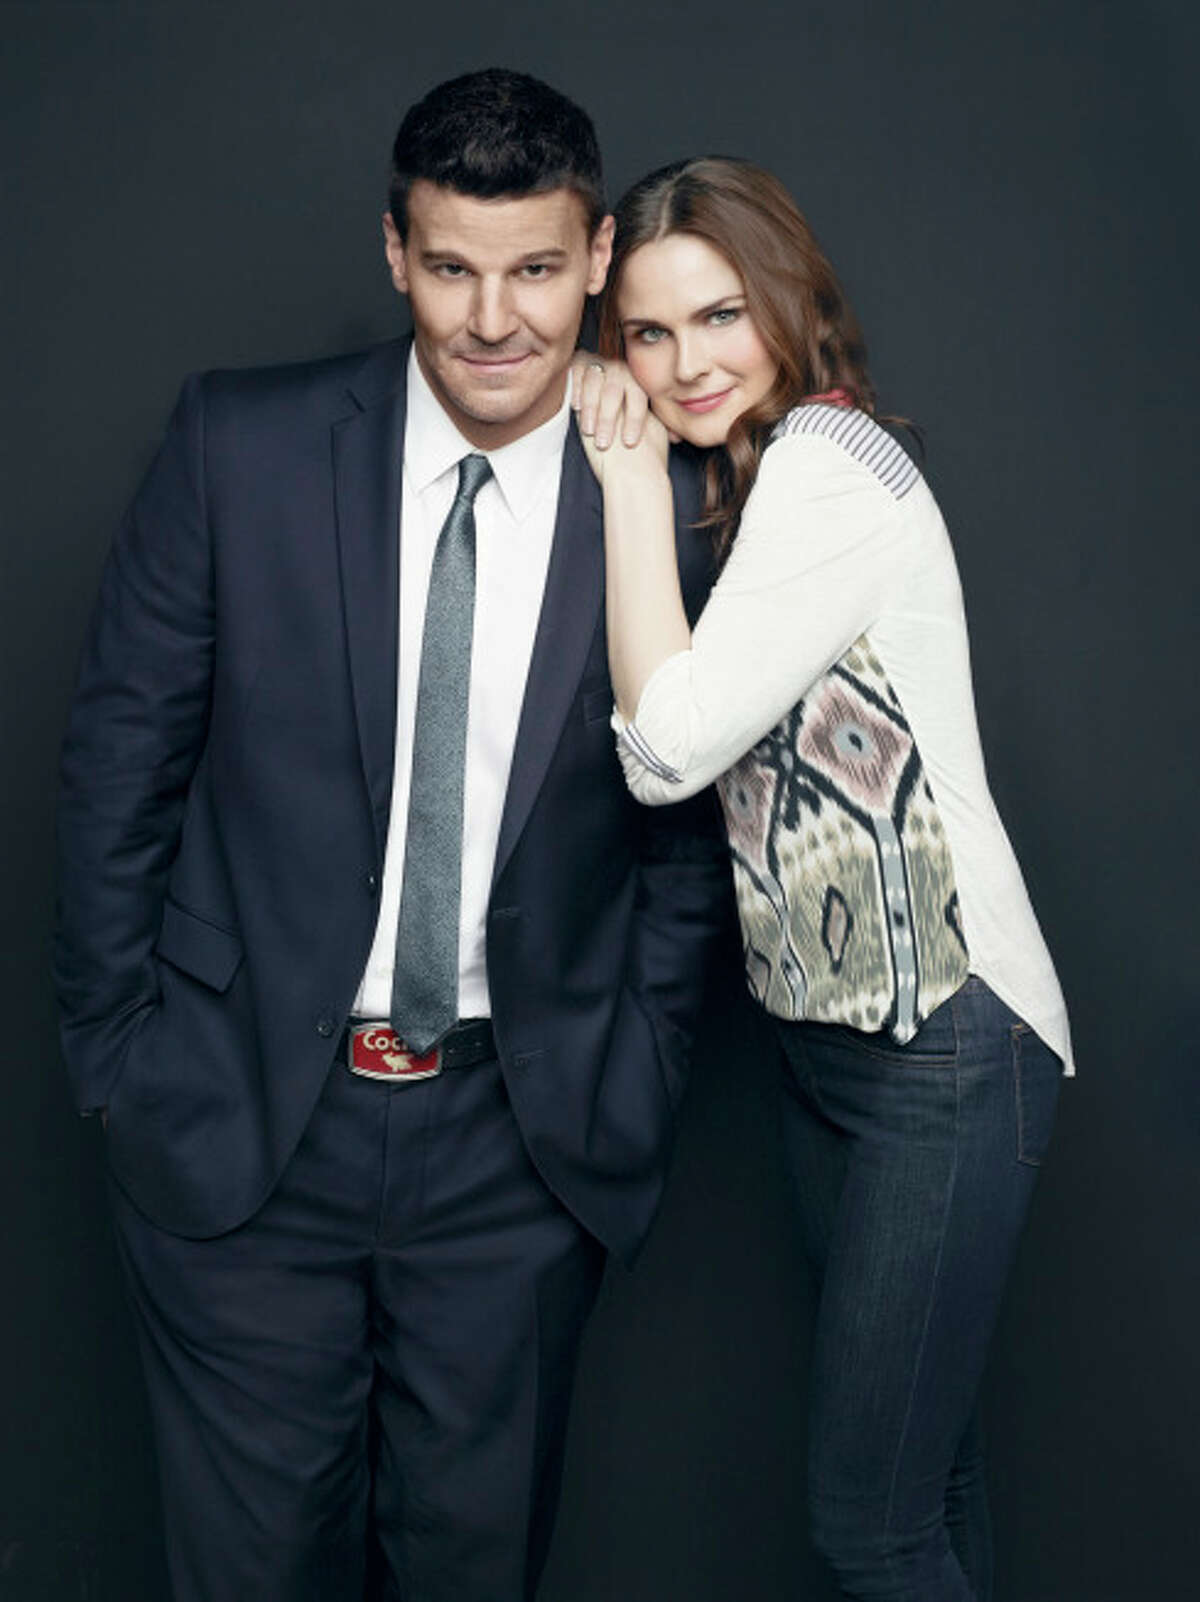 BONES One of the current longest-running series on network TV, the romantic crime drama will end after 11 seasons on Tuesday, March 28th on FOX.